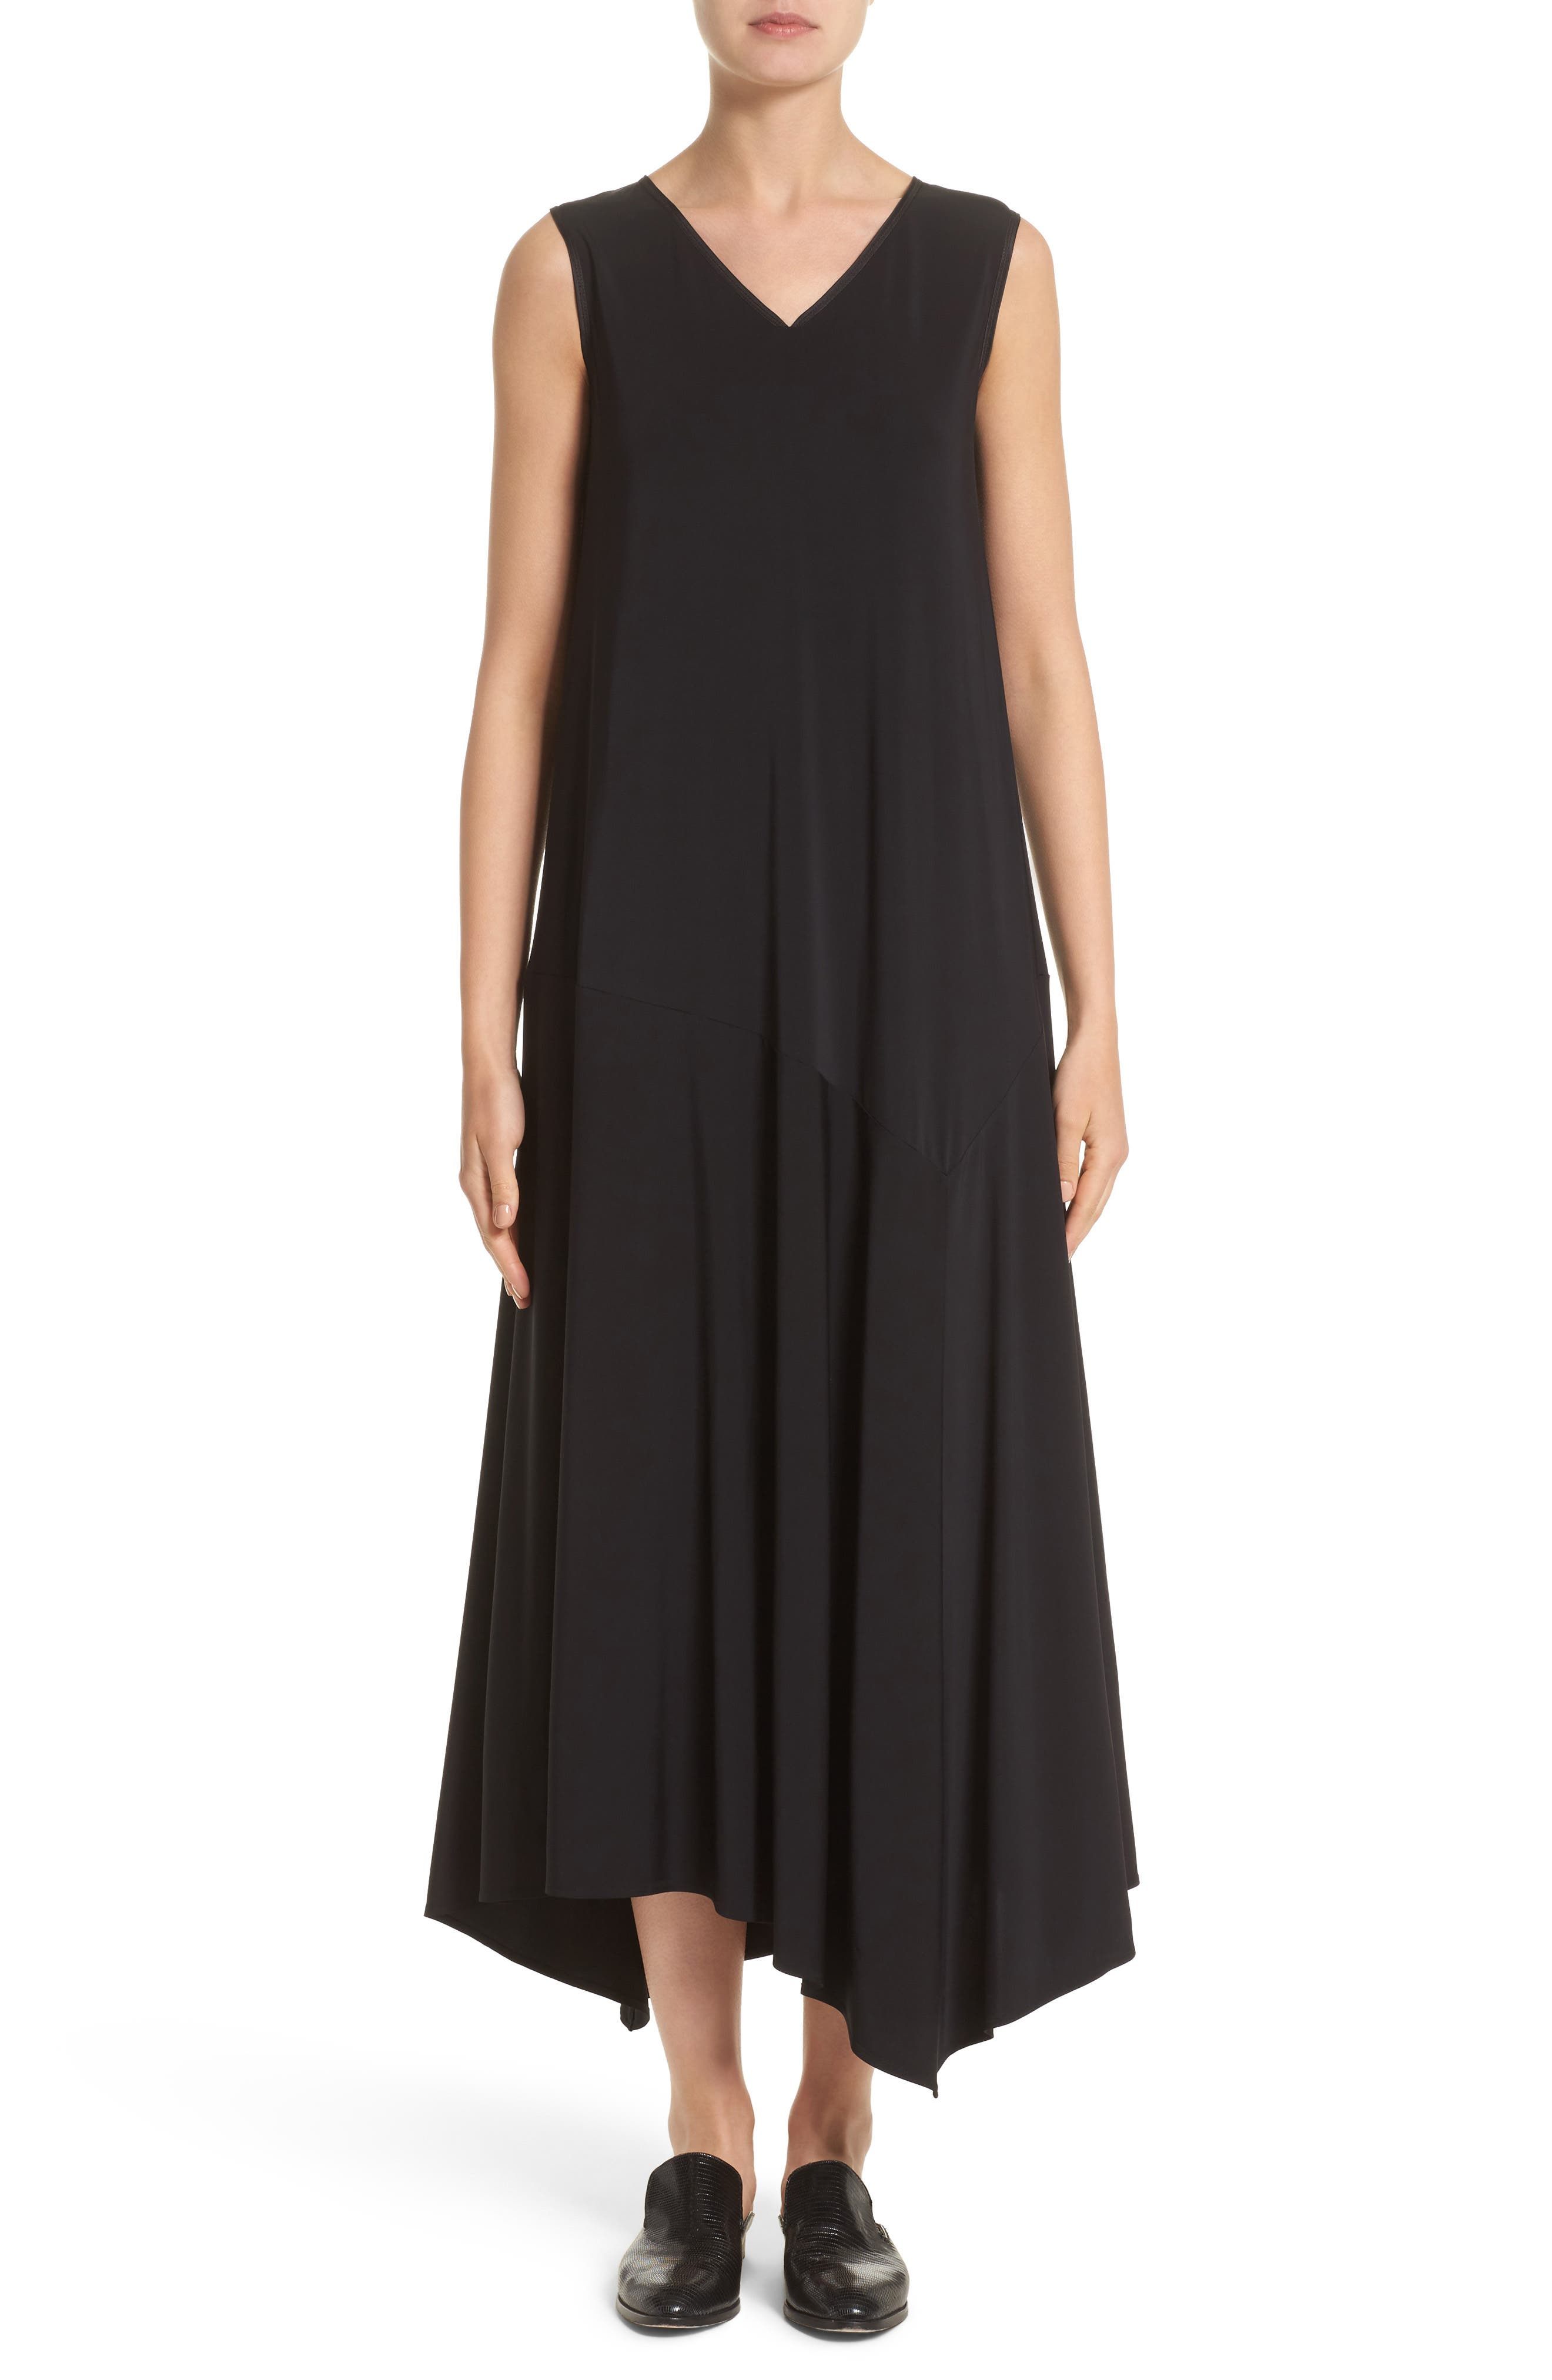 LAFAYETTE 148 NEW YORK Cultivated Crepe Jersey Asymmetrical Dress